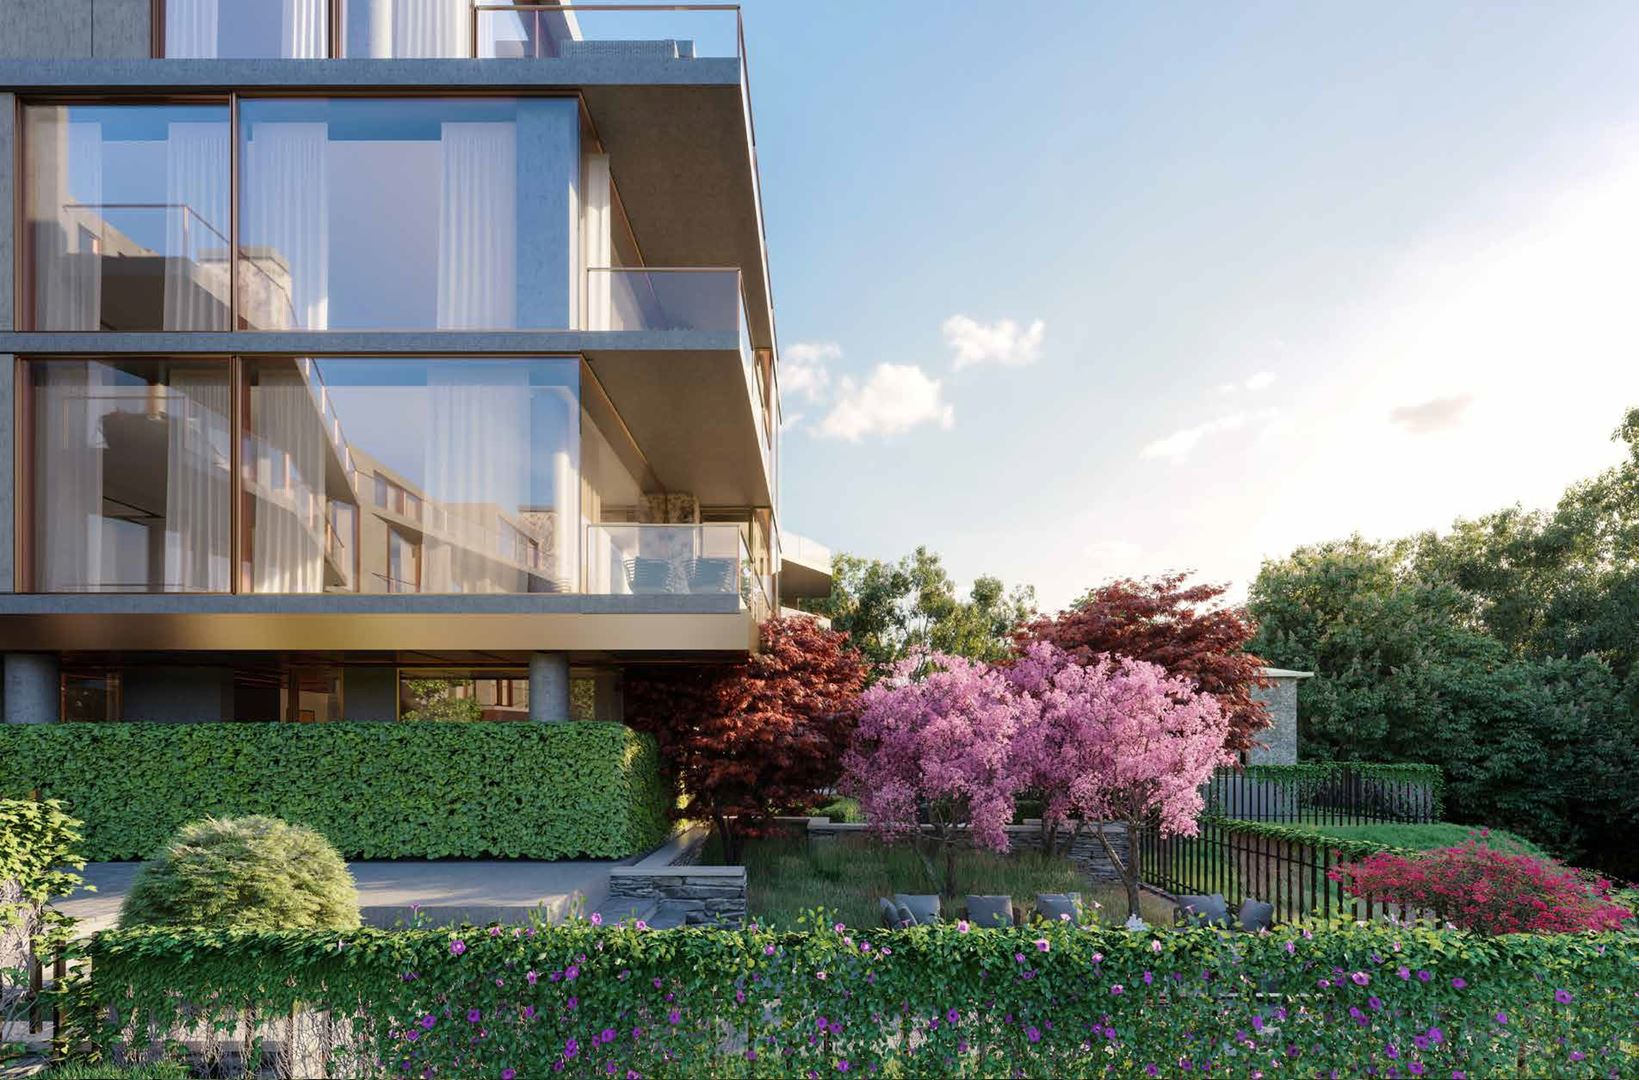 Rendering of No. 7 Rosedale Condos exterior side view.